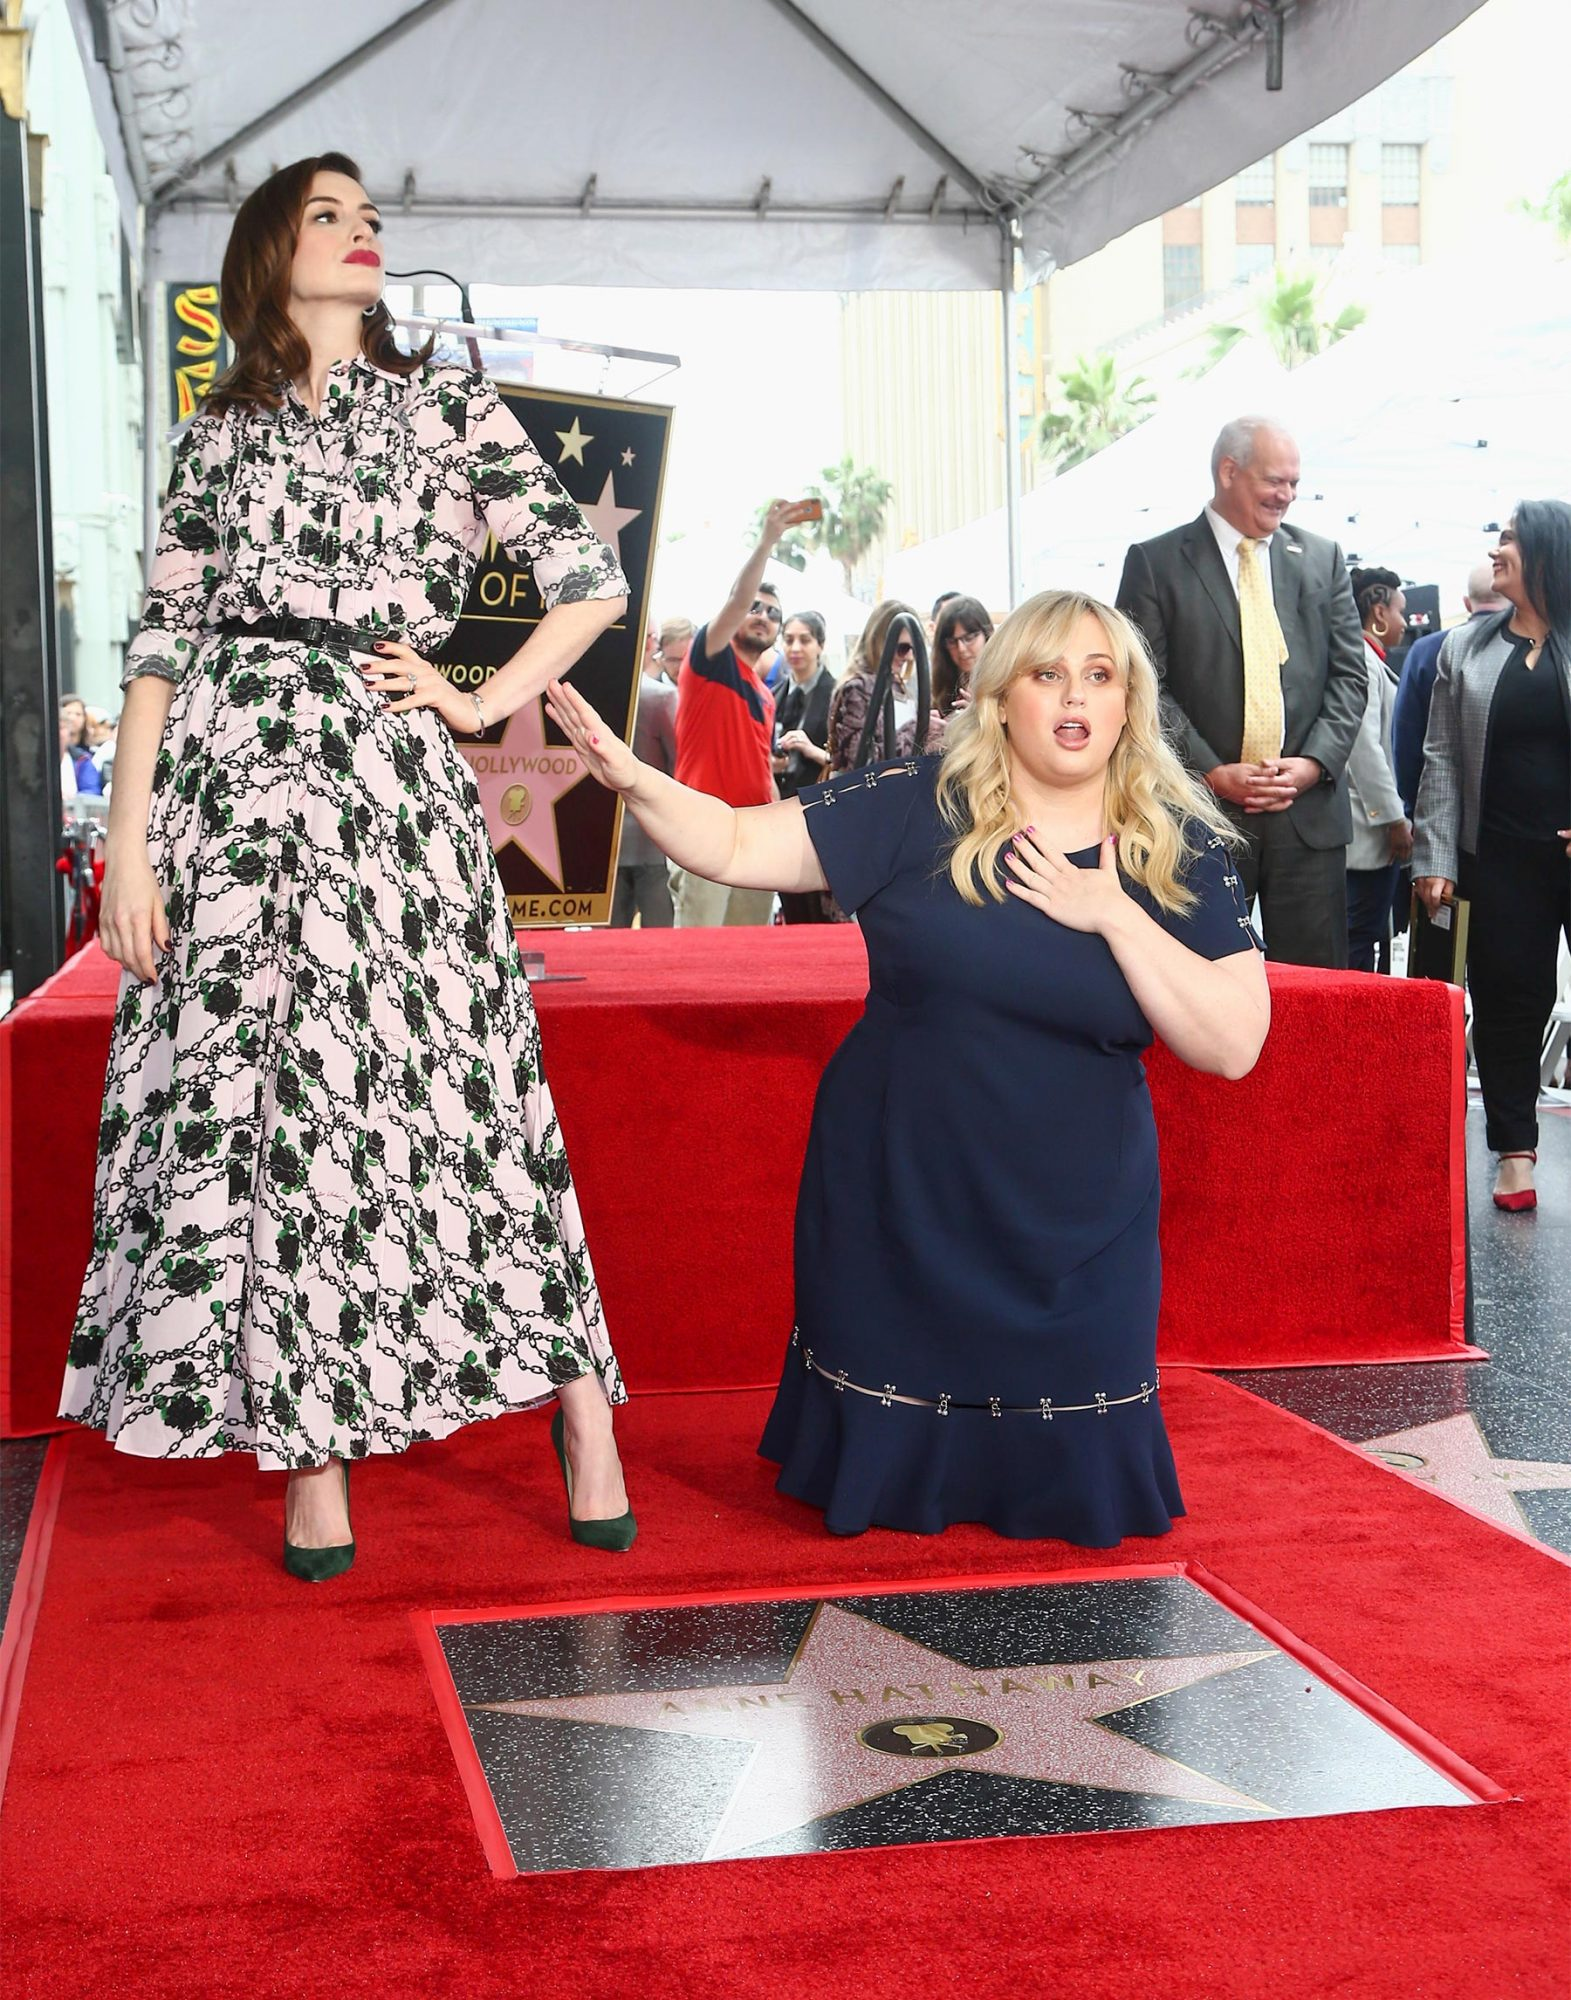 HOLLYWOOD, CALIFORNIA - MAY 09: Anne Hathaway and Rebel Wilson attend a Ceremony Honoring Anne Hathaway With Star On The Hollywood Walk Of Fame on May 09, 2019 in Hollywood, California. (Photo by Tommaso Boddi/WireImage)